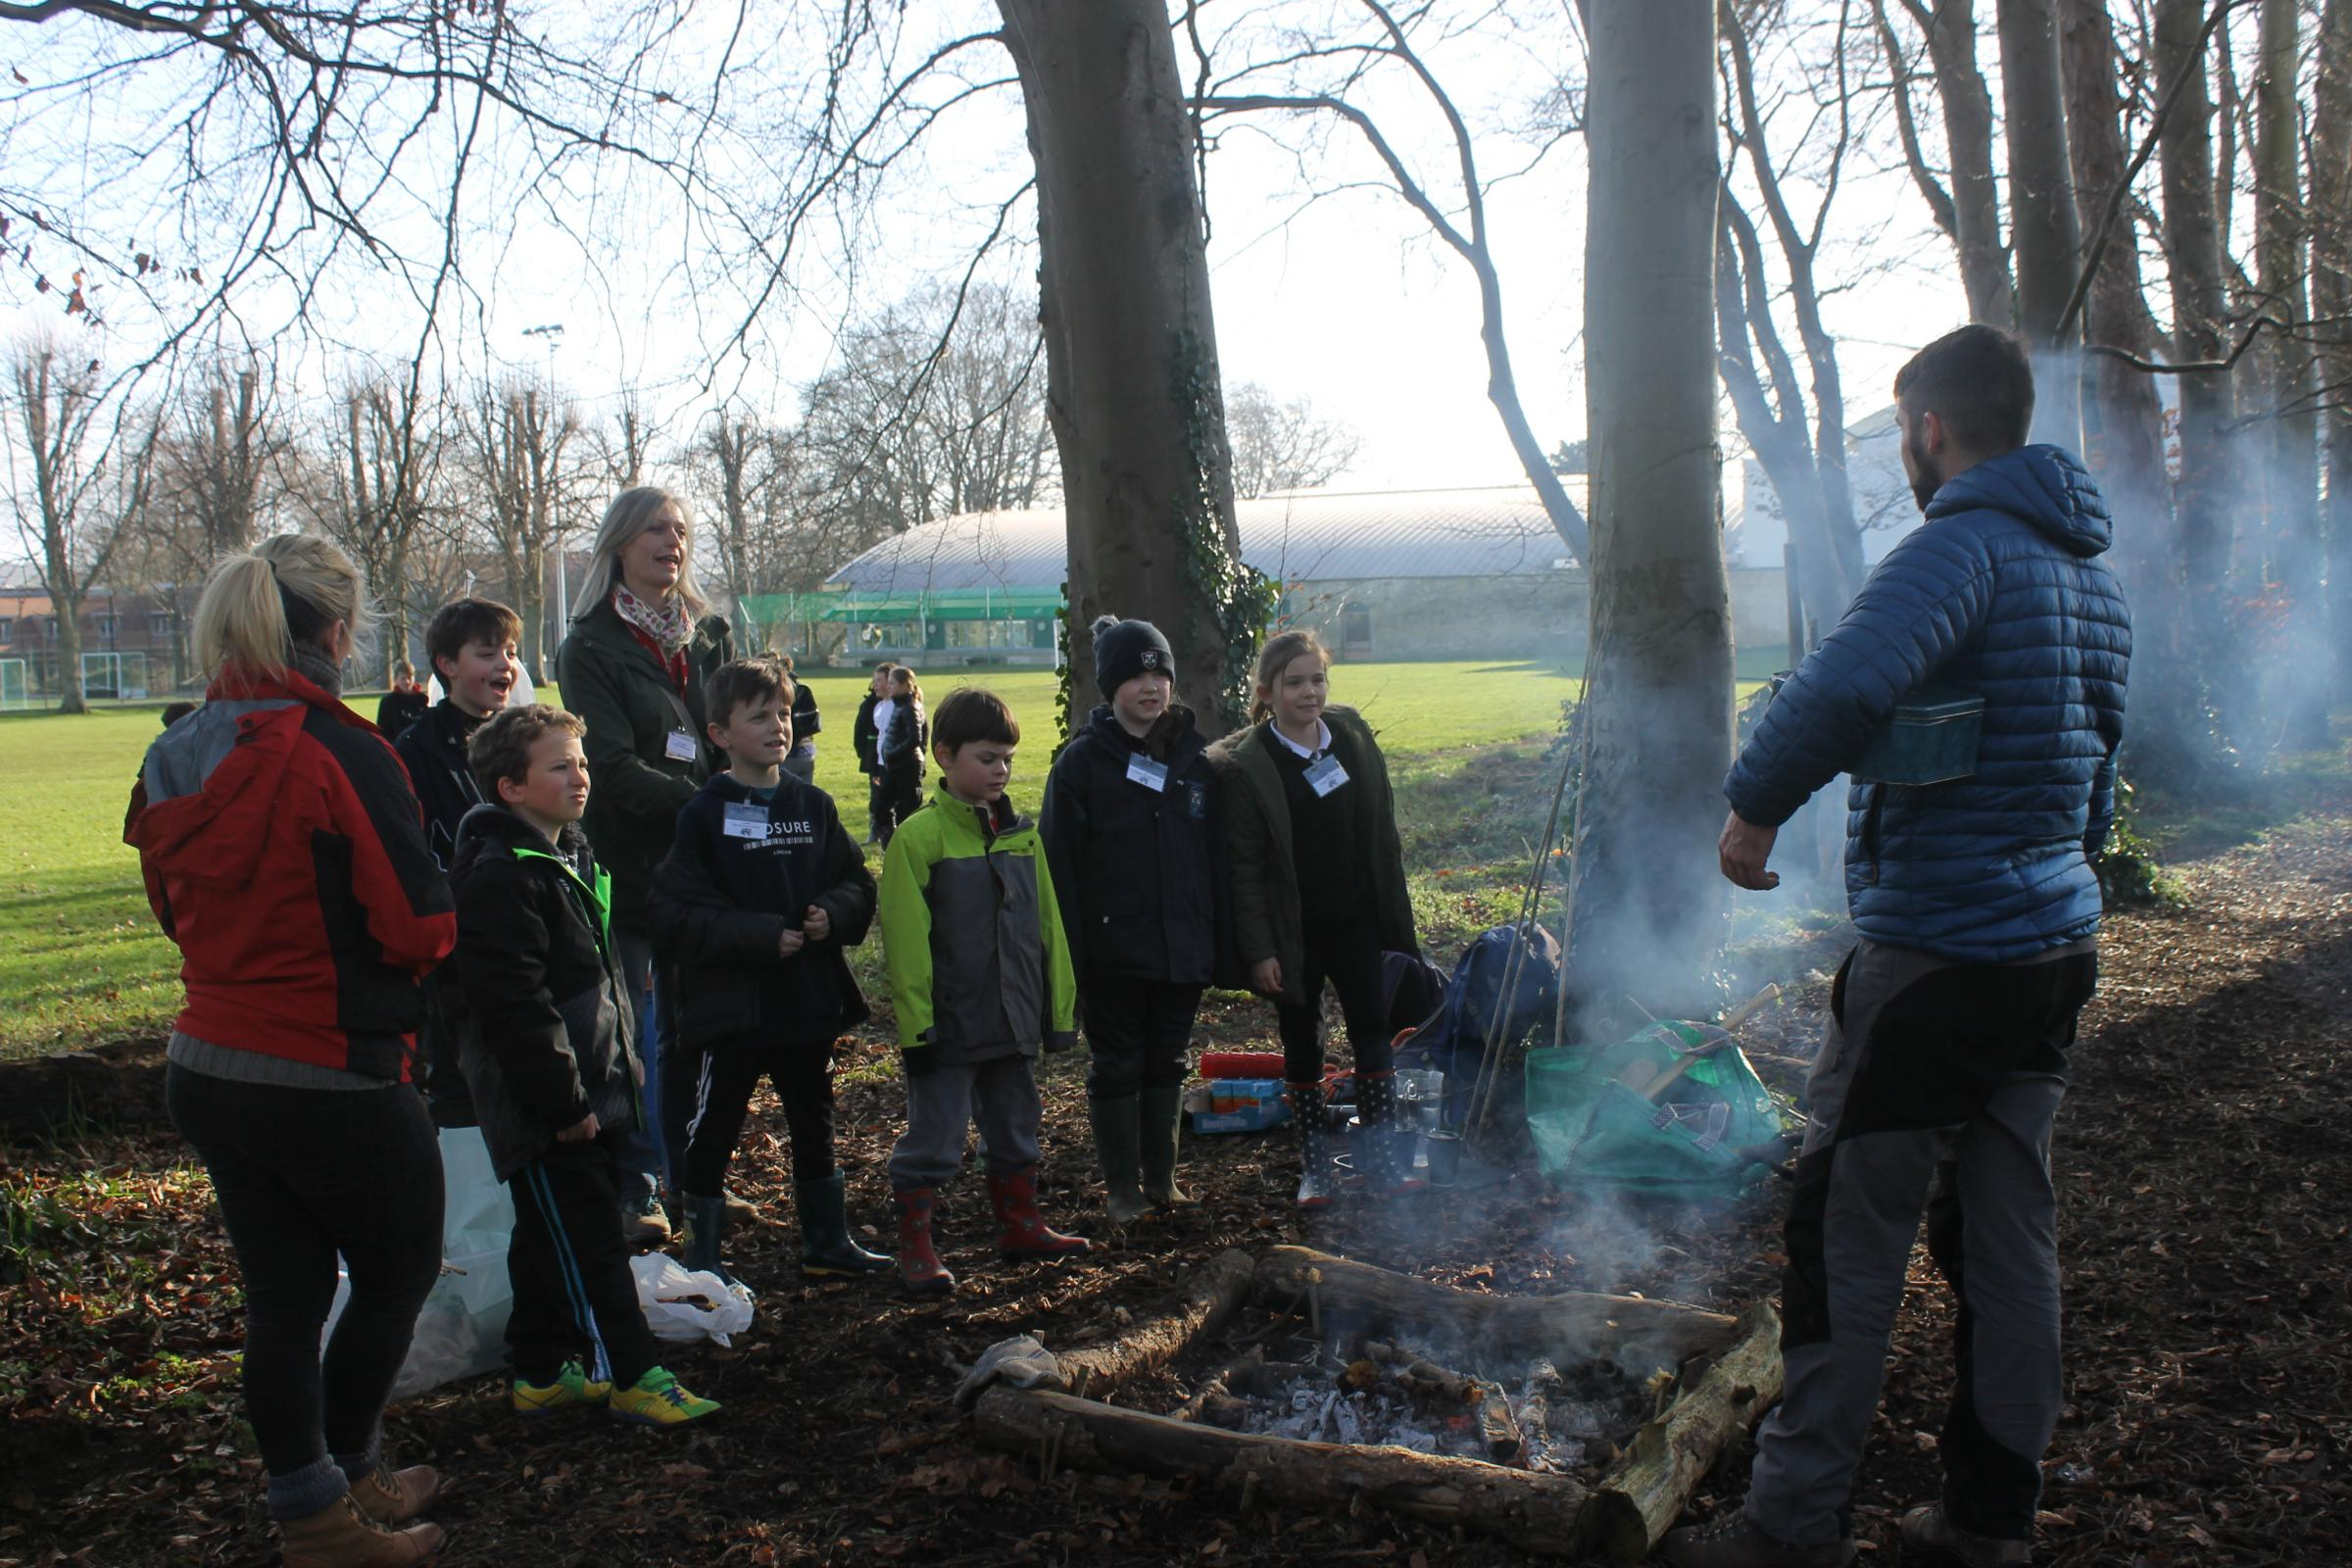 Primary school children learn lessons from great outdoors